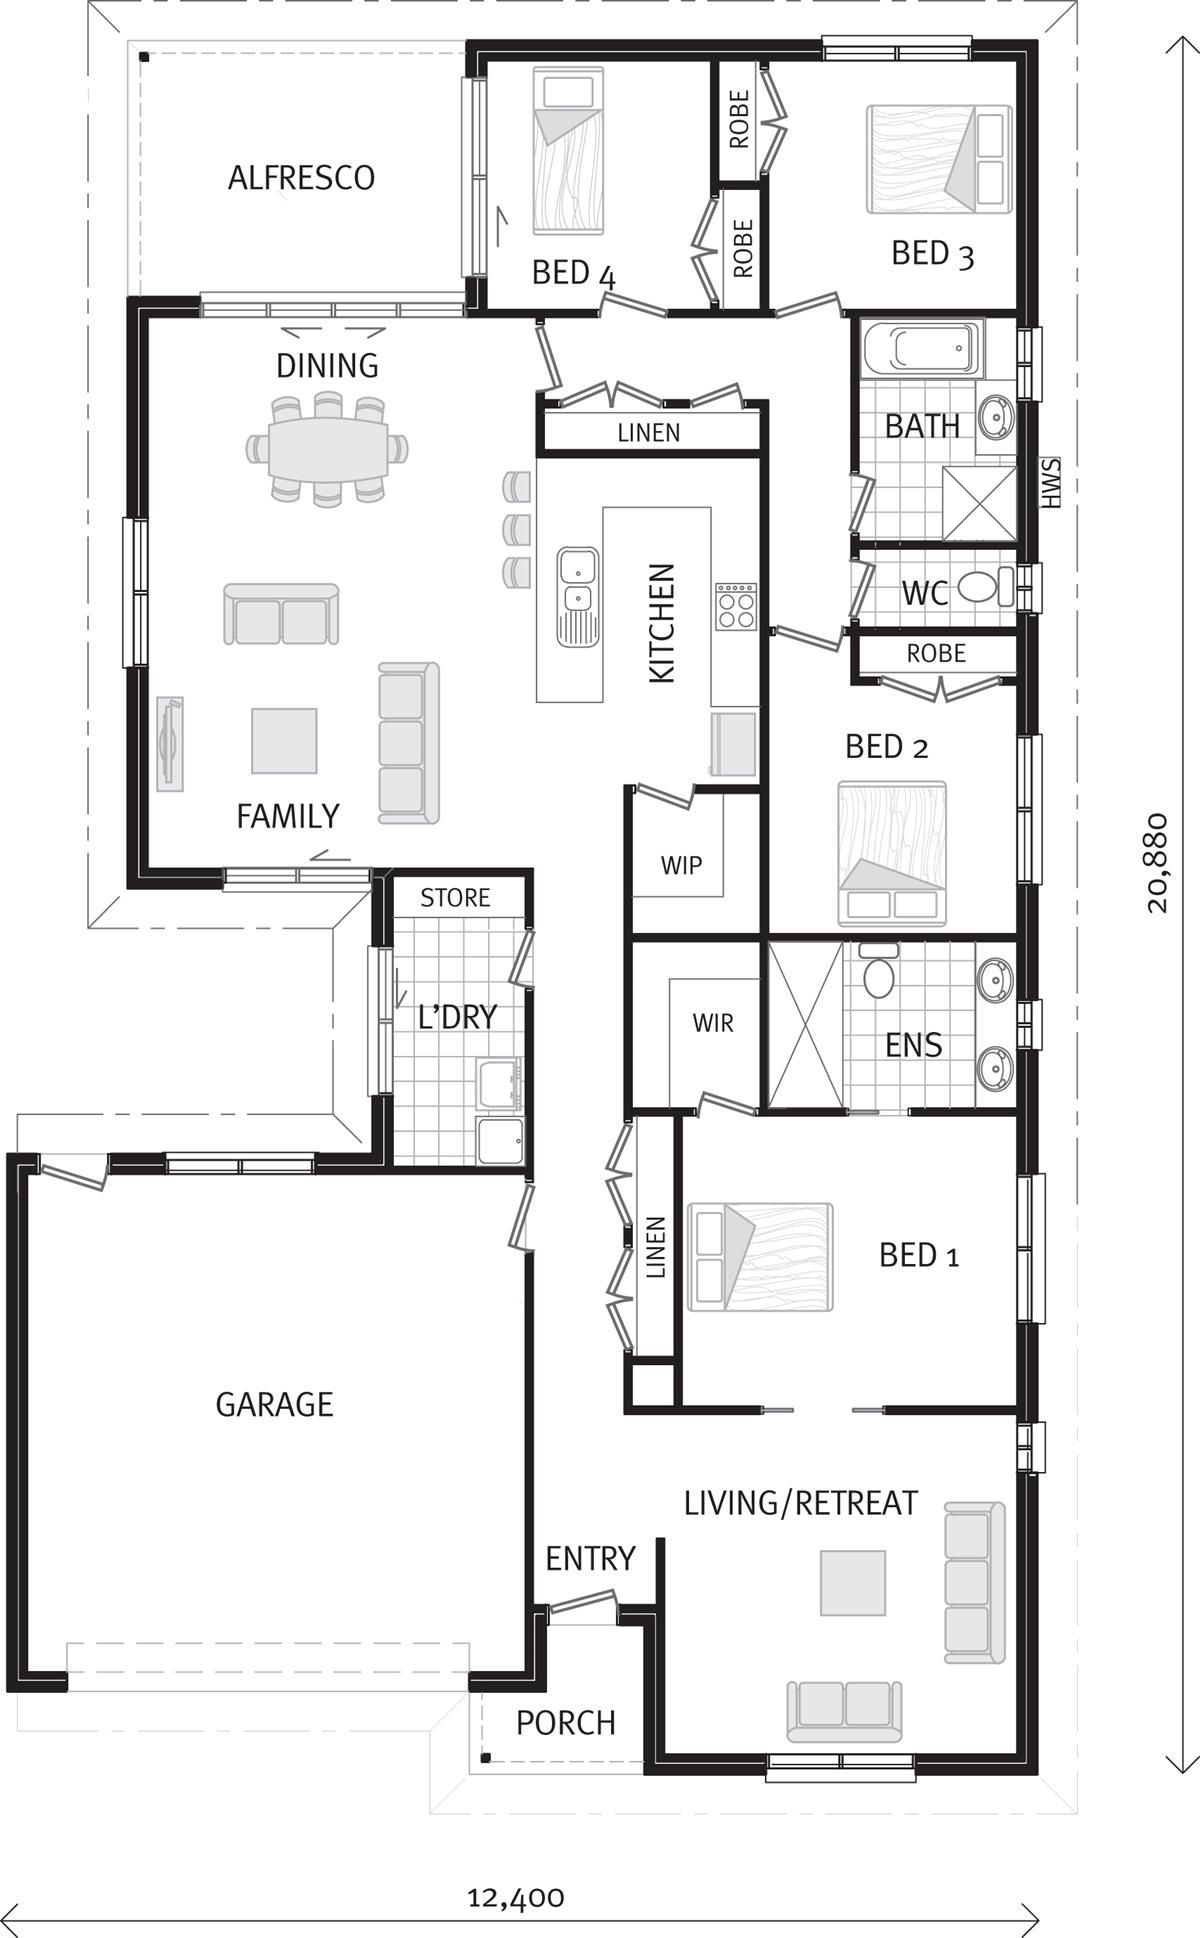 Riverside 3 Sizes Home Designs In Wangaratta House Design Build My Own House Design